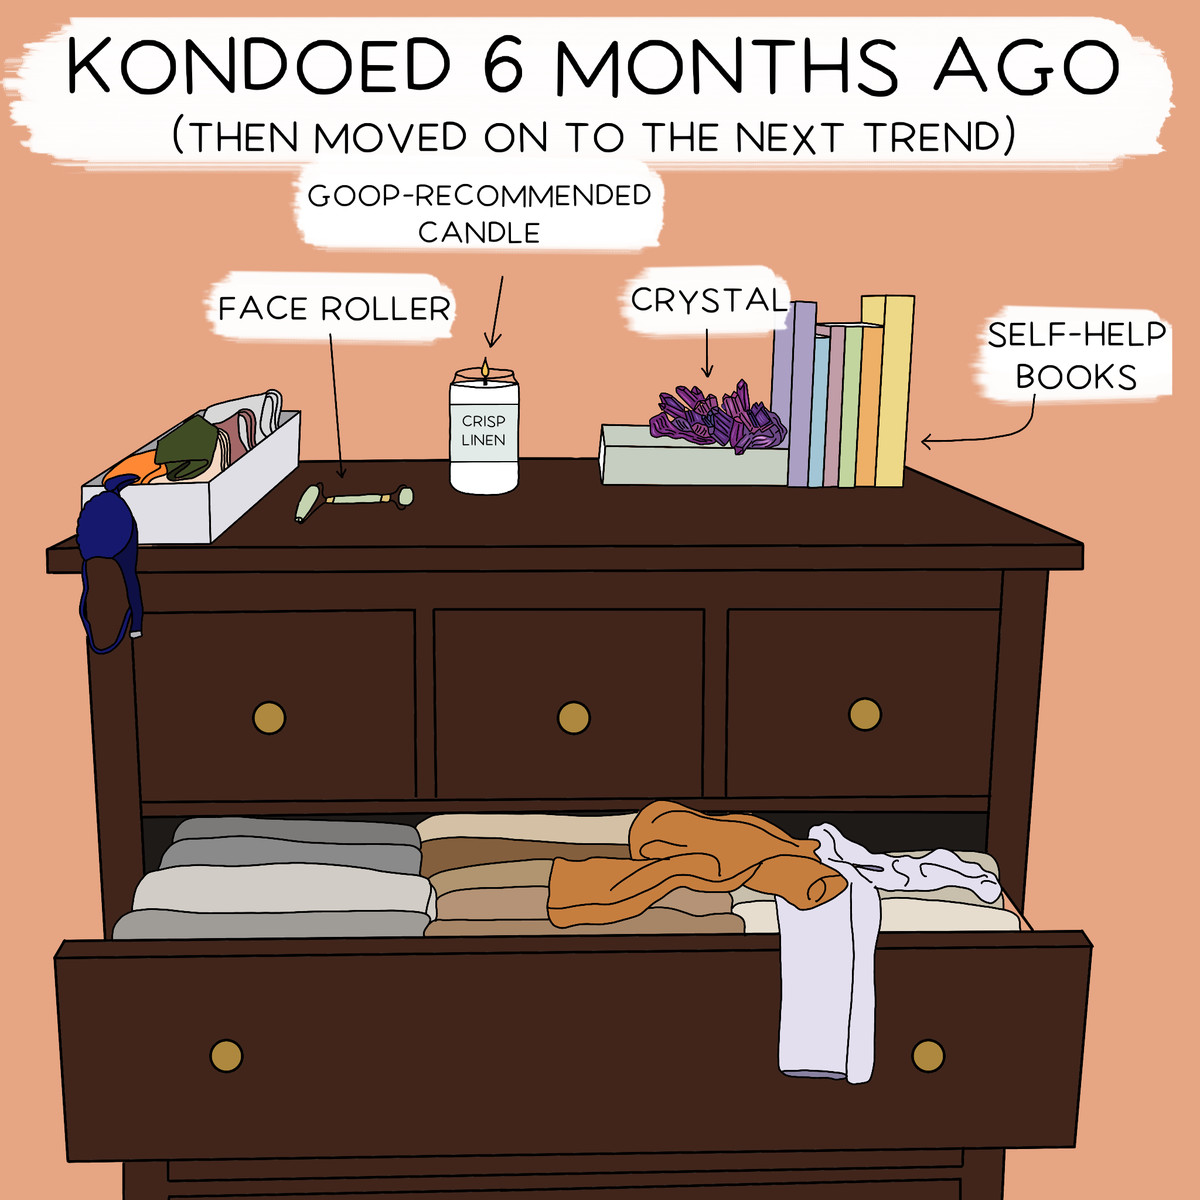 """""""Kondoed 6 Months Ago (Then Moved On to the Next Trend"""" has a dresser where most of the clothes are folded Marie Kondo style, though a few are not, and on top, there's a face roller, crystal, and some self-help books."""